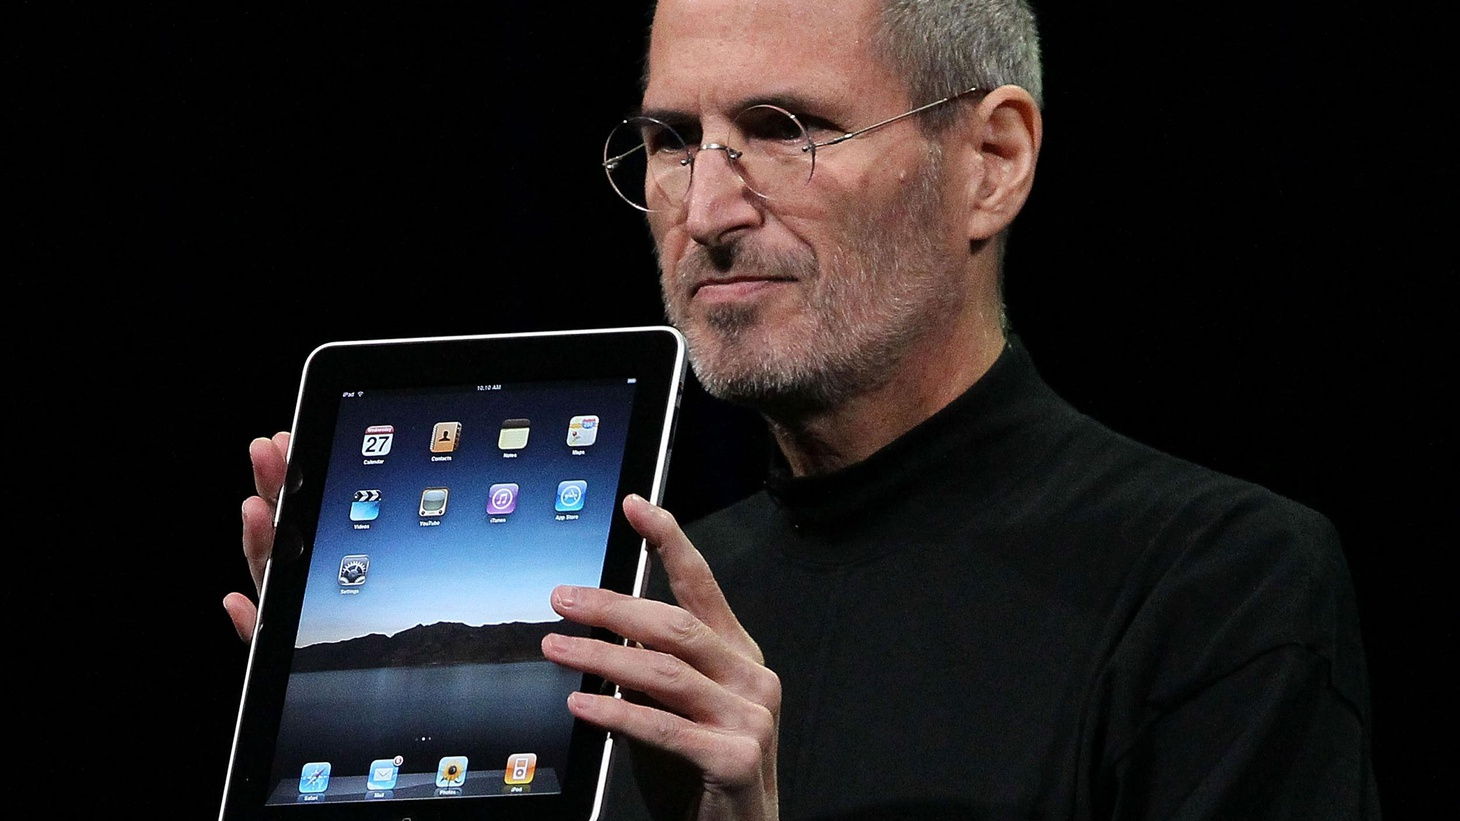 Steve Jobs has the right name for what's missing in America's economy. Does he represent the way back to prosperity? We look at his record at Apple and its influence...